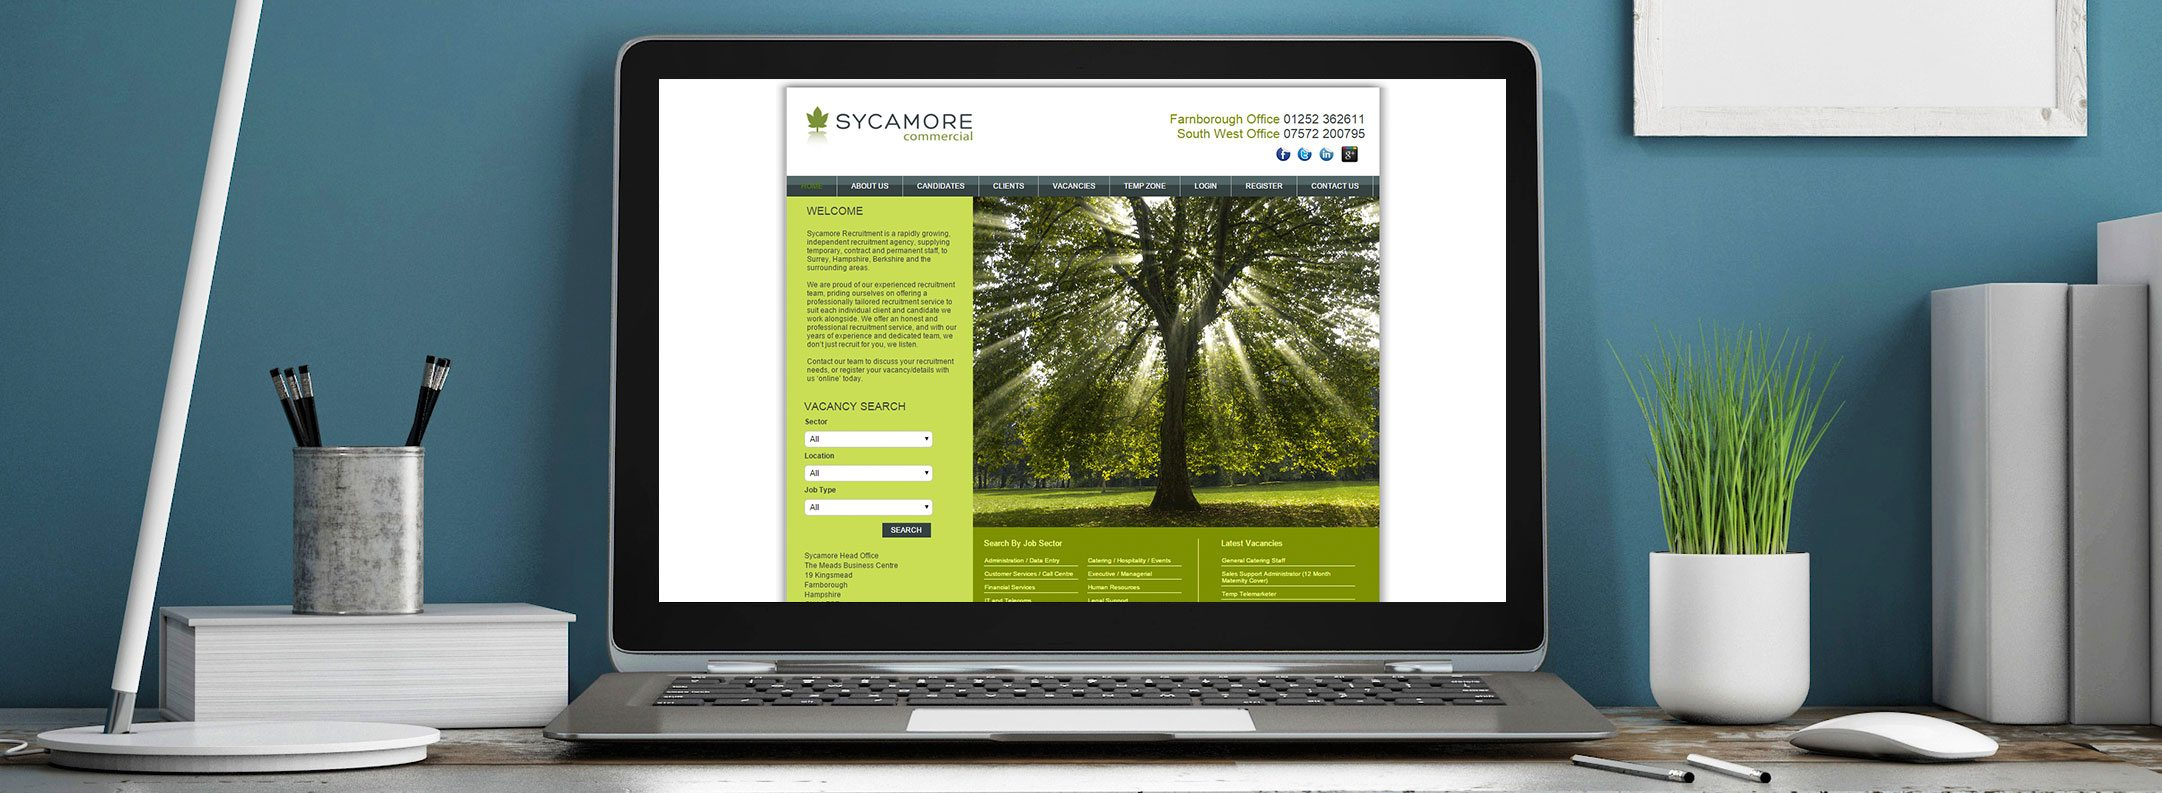 Website-banner-sycamore